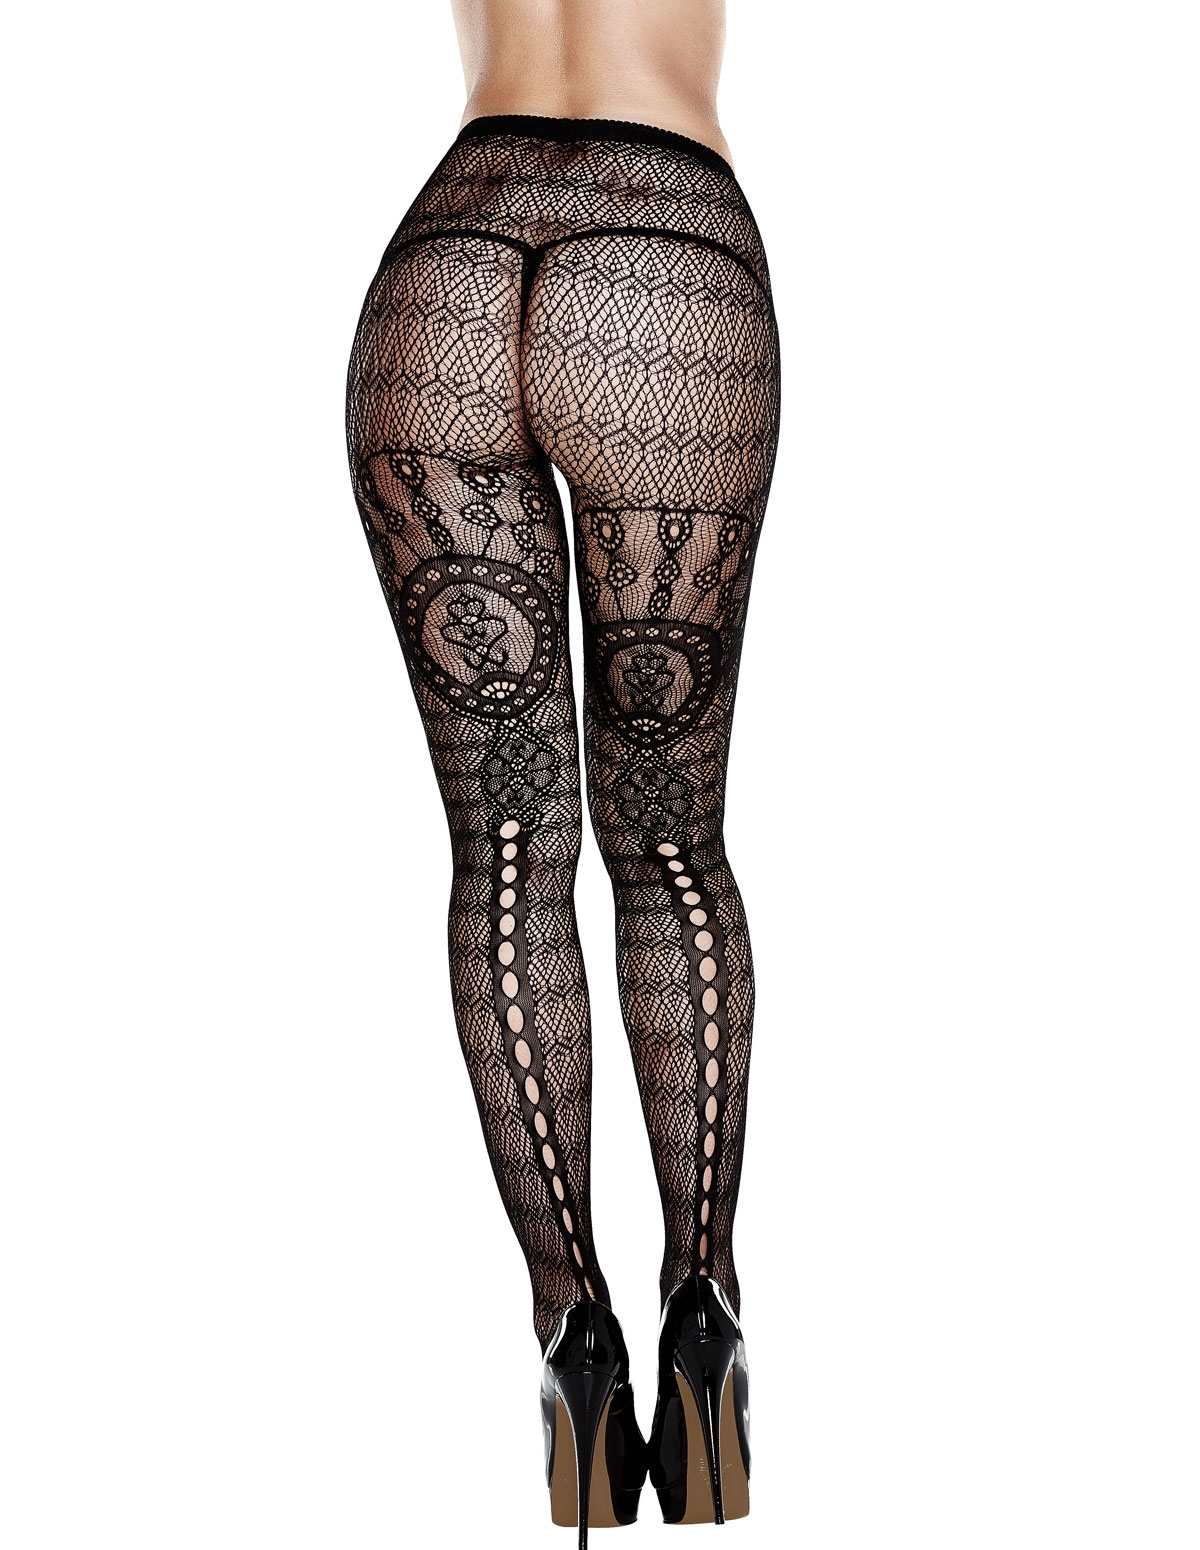 Jacquard Pantyhose With Keyhole